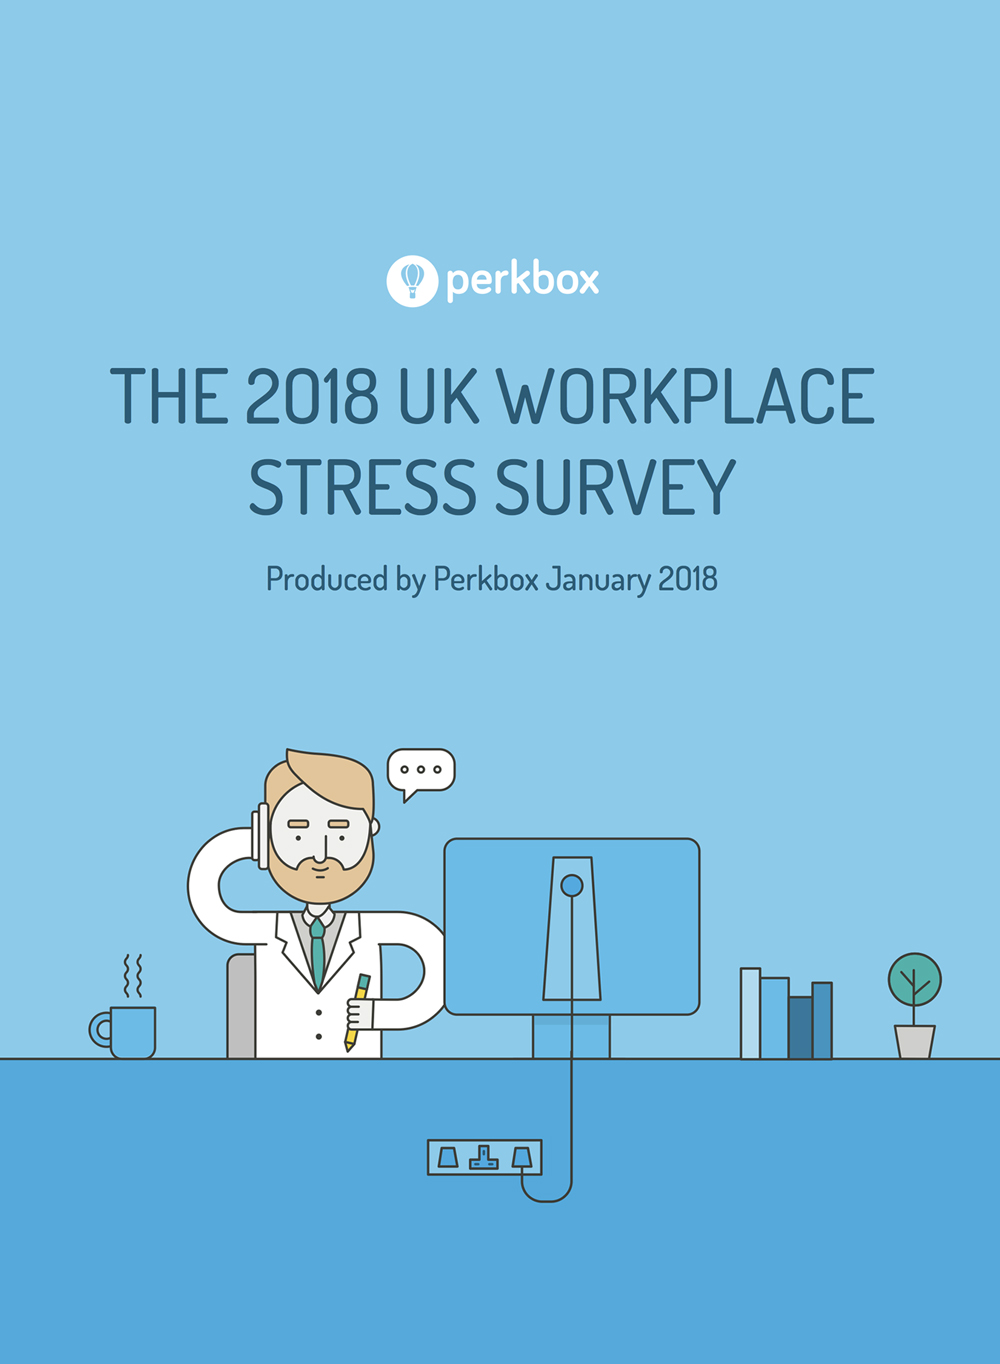 The 2018 UK Workplace Stress Survey